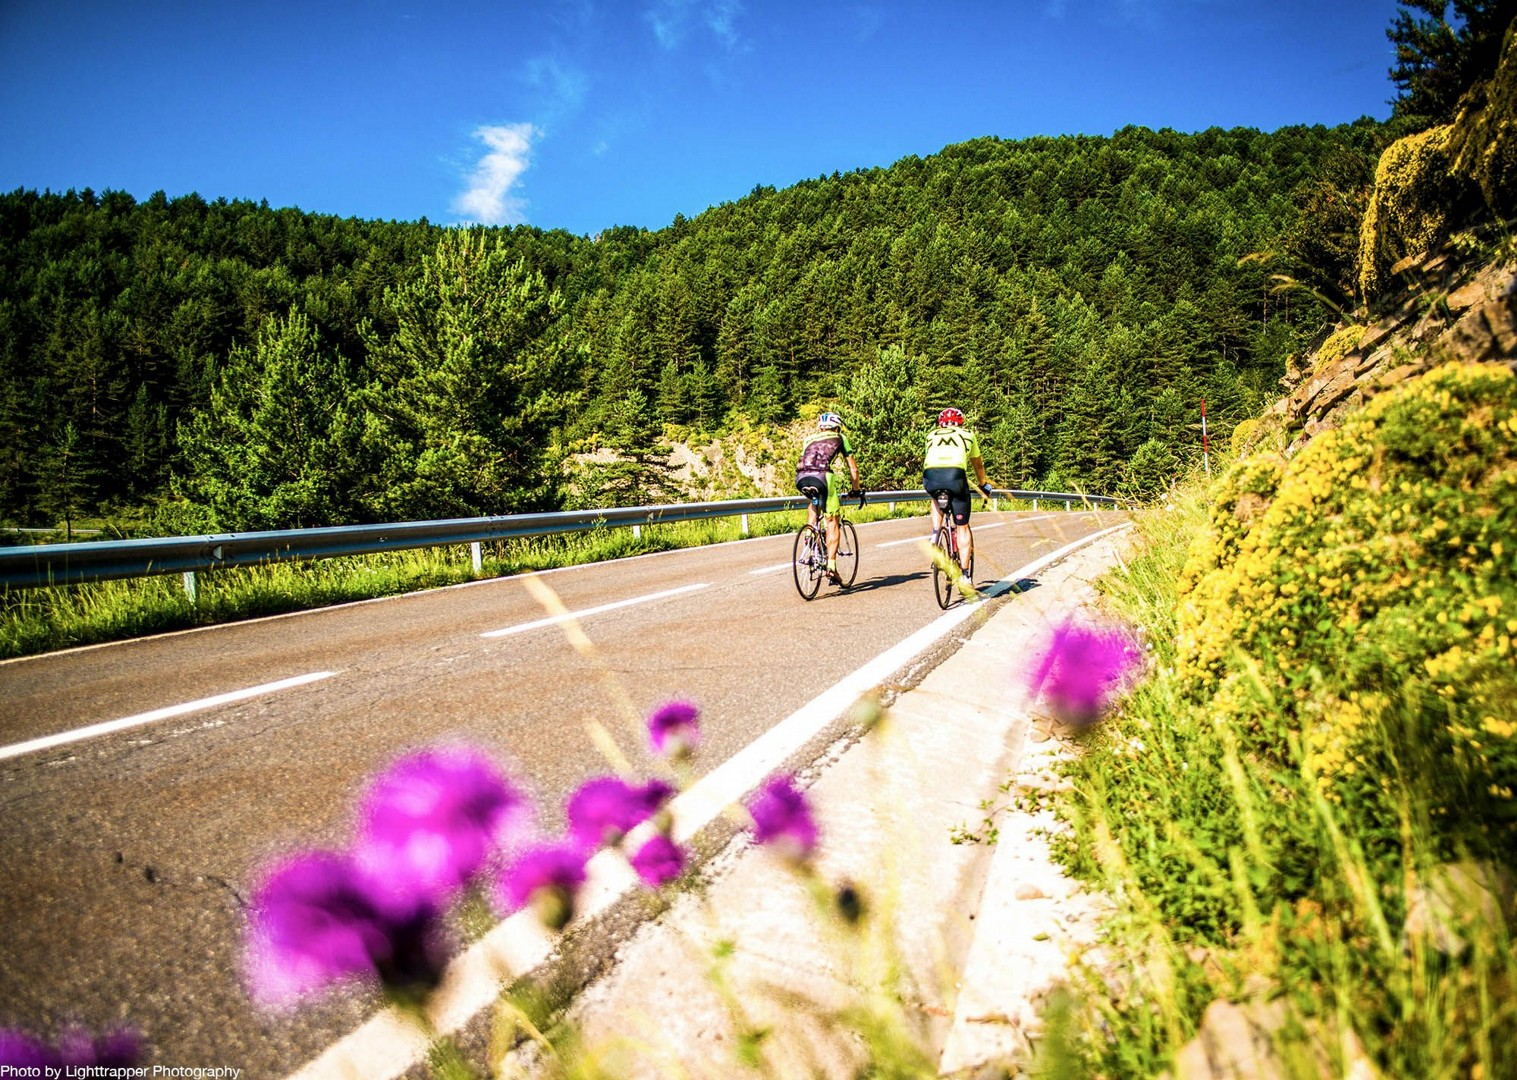 day5_021-2.jpg - France - Pyrenees Fitness Week - Guided Road Cycling Holiday (Grade 3-4) - Road Cycling